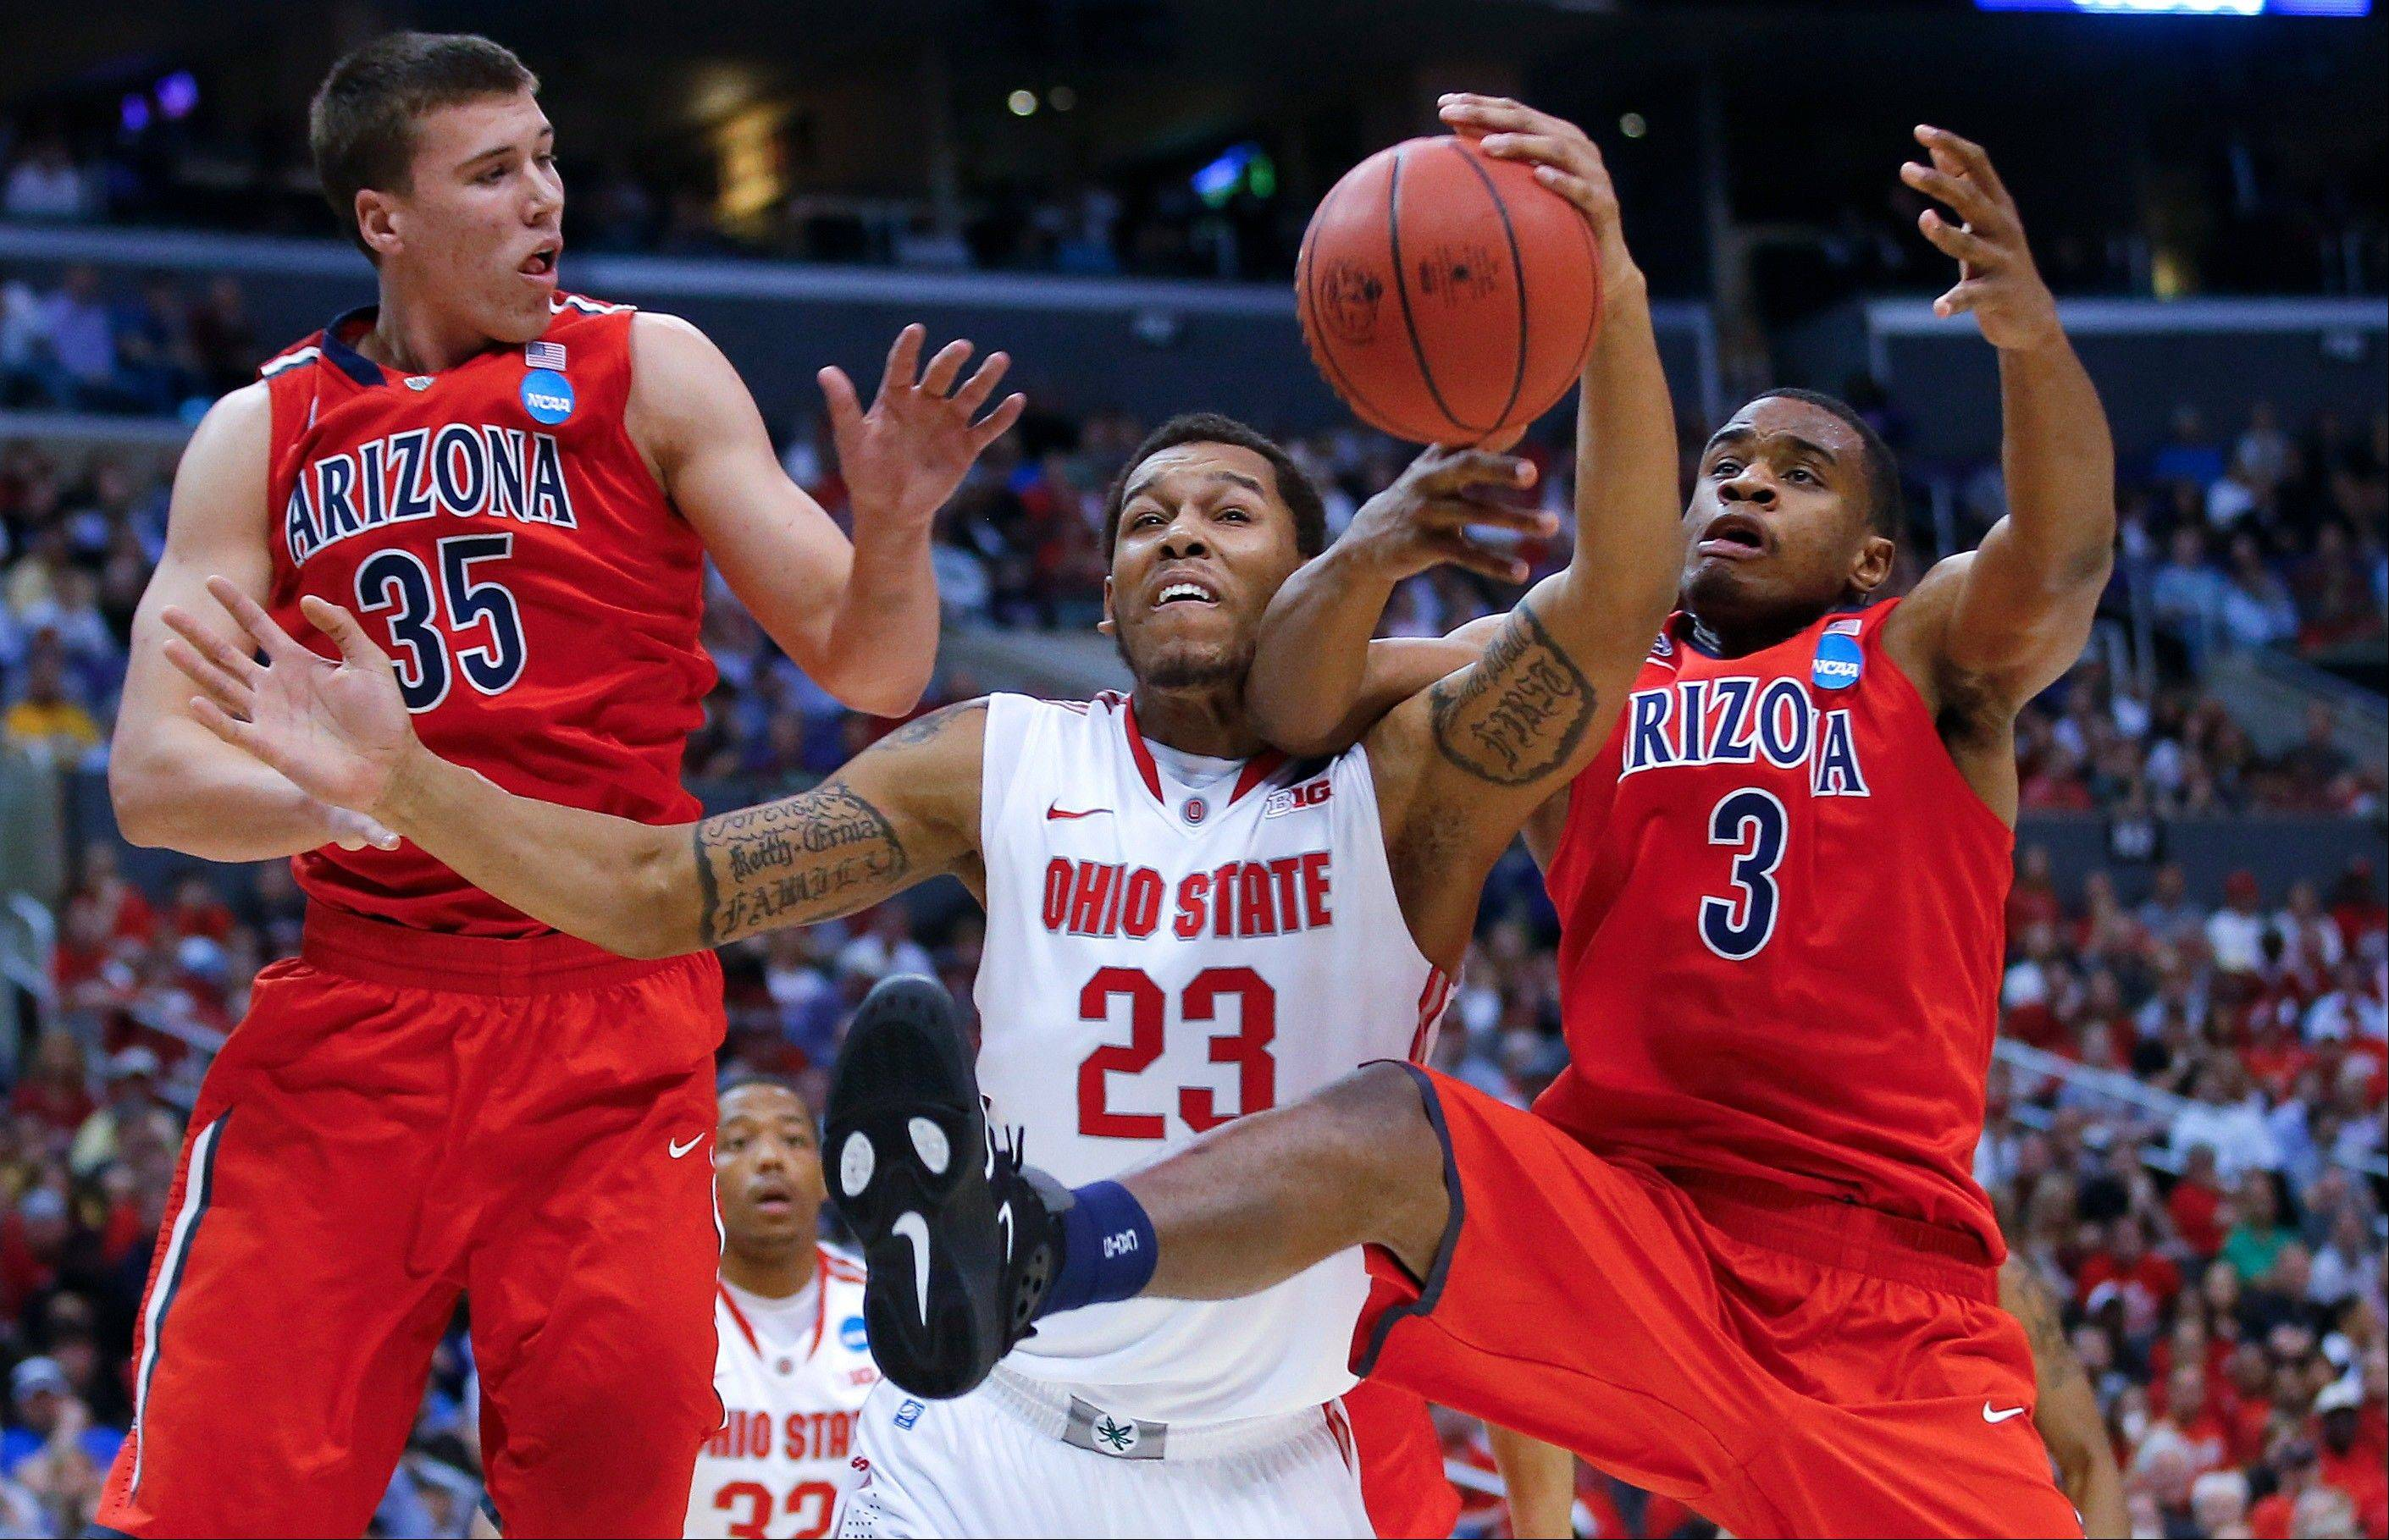 Ohio State's Amir Williams, center, is double-teamed by Arizona's Kaleb Tarczewski, left, and Kevin Parrom during the first half of a West Regional semifinal in the NCAA men's college basketball tournament, Thursday, March 28, 2013, in Los Angeles. (AP Photo/Jae C. Hong)